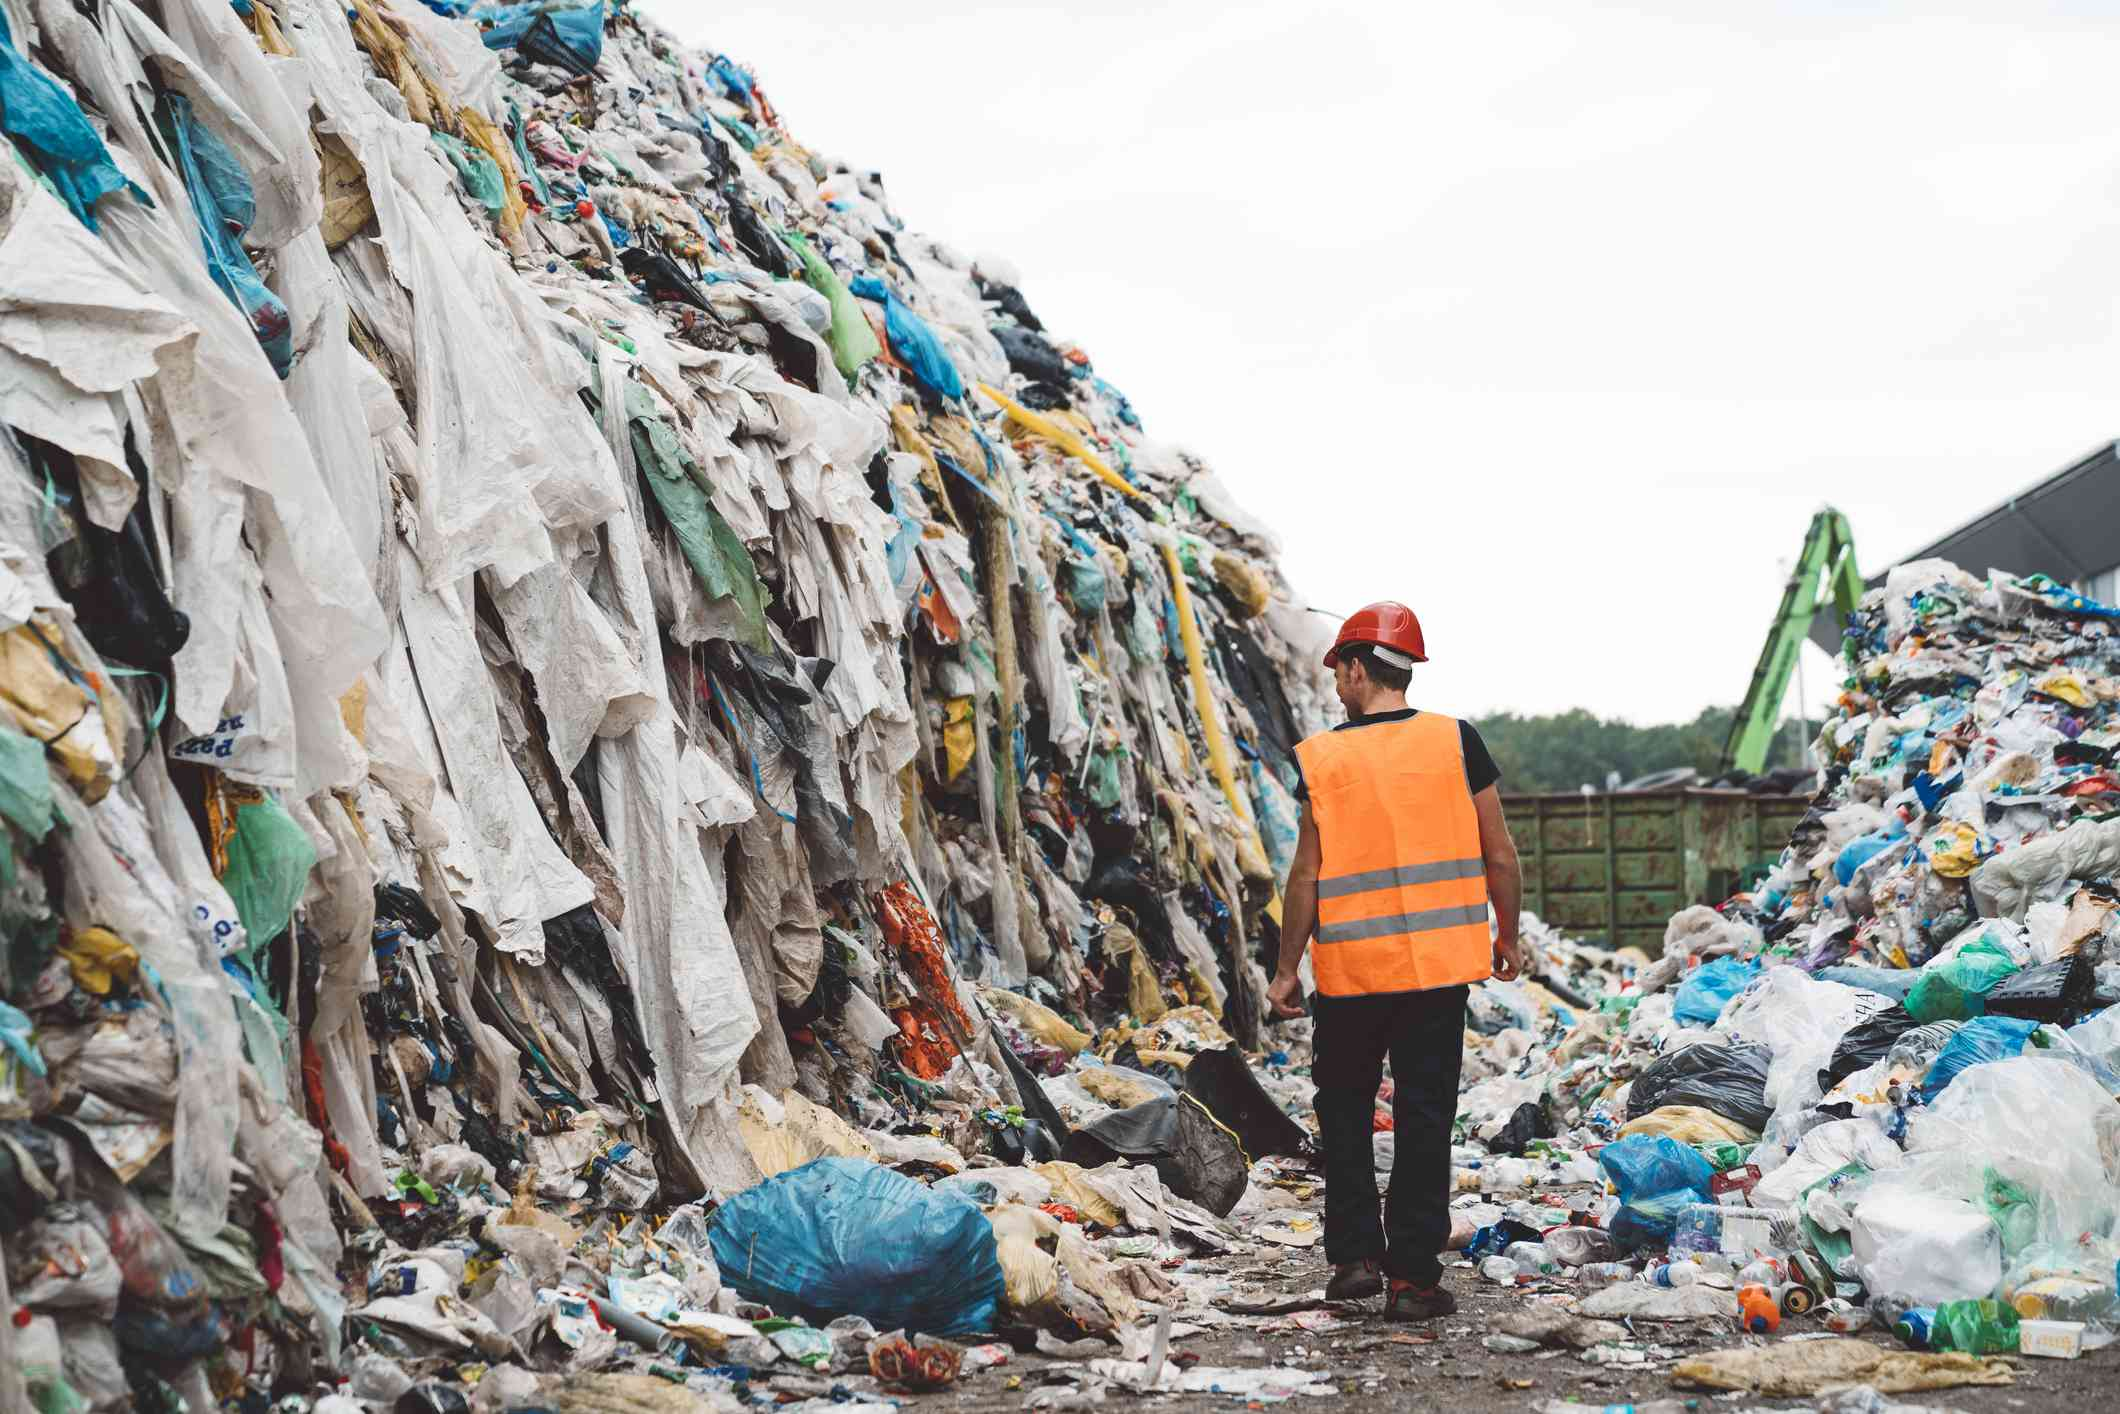 Worker walking through mounds of textile waste